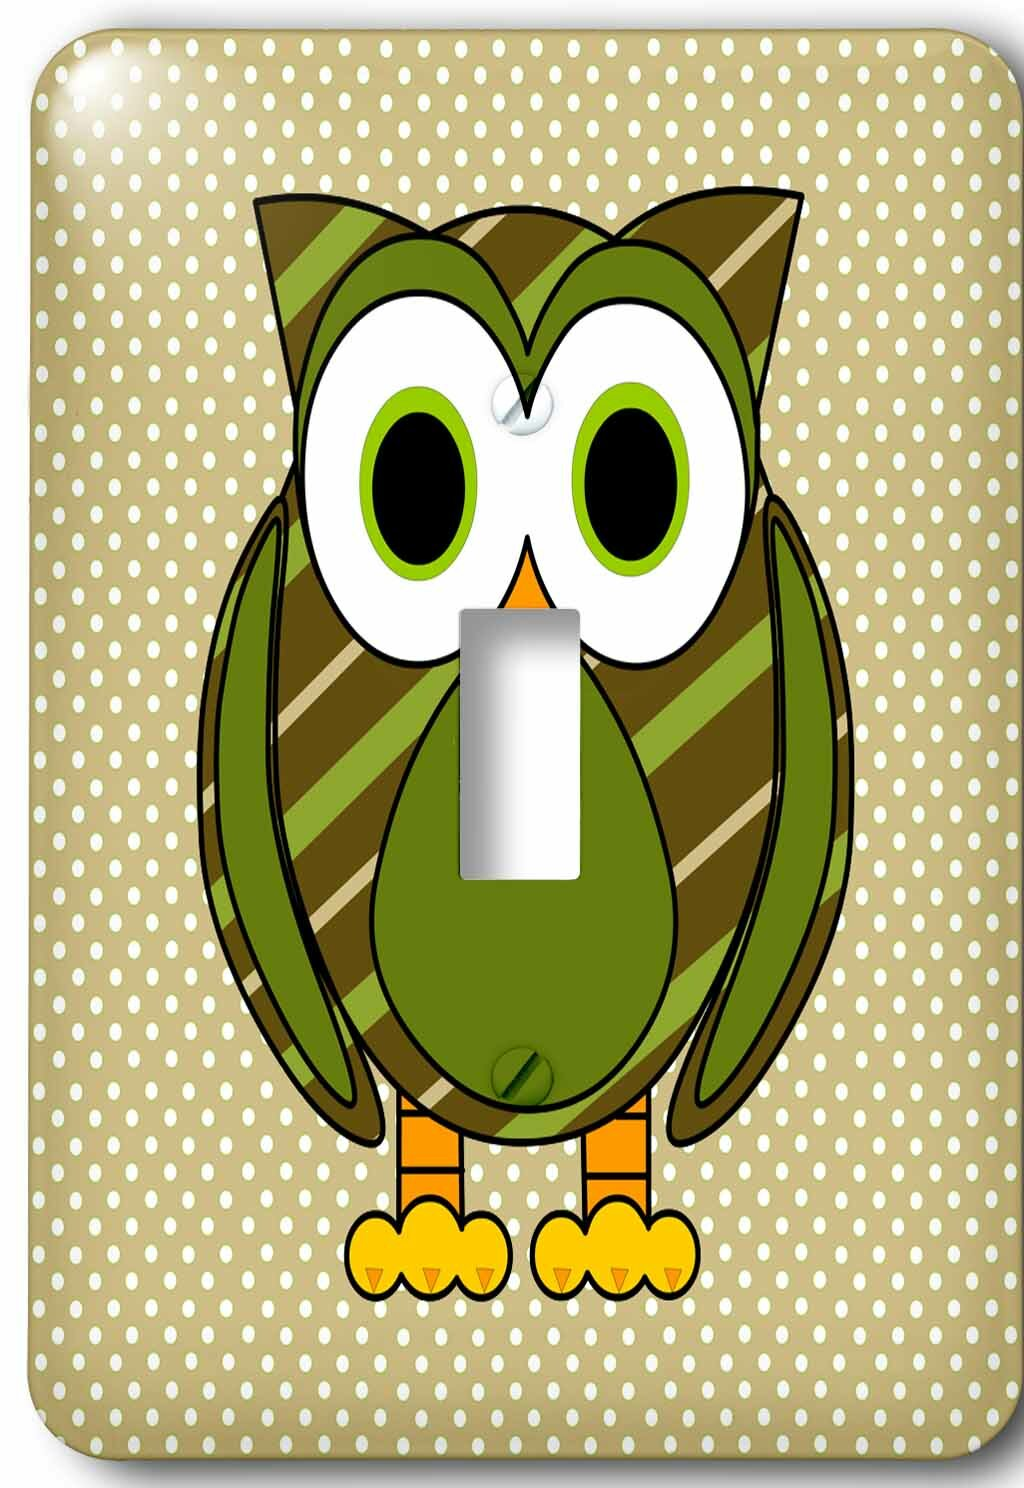 3drose Cute Owl And Dots 1 Gang Toggle Light Switch Wall Plate Wayfair